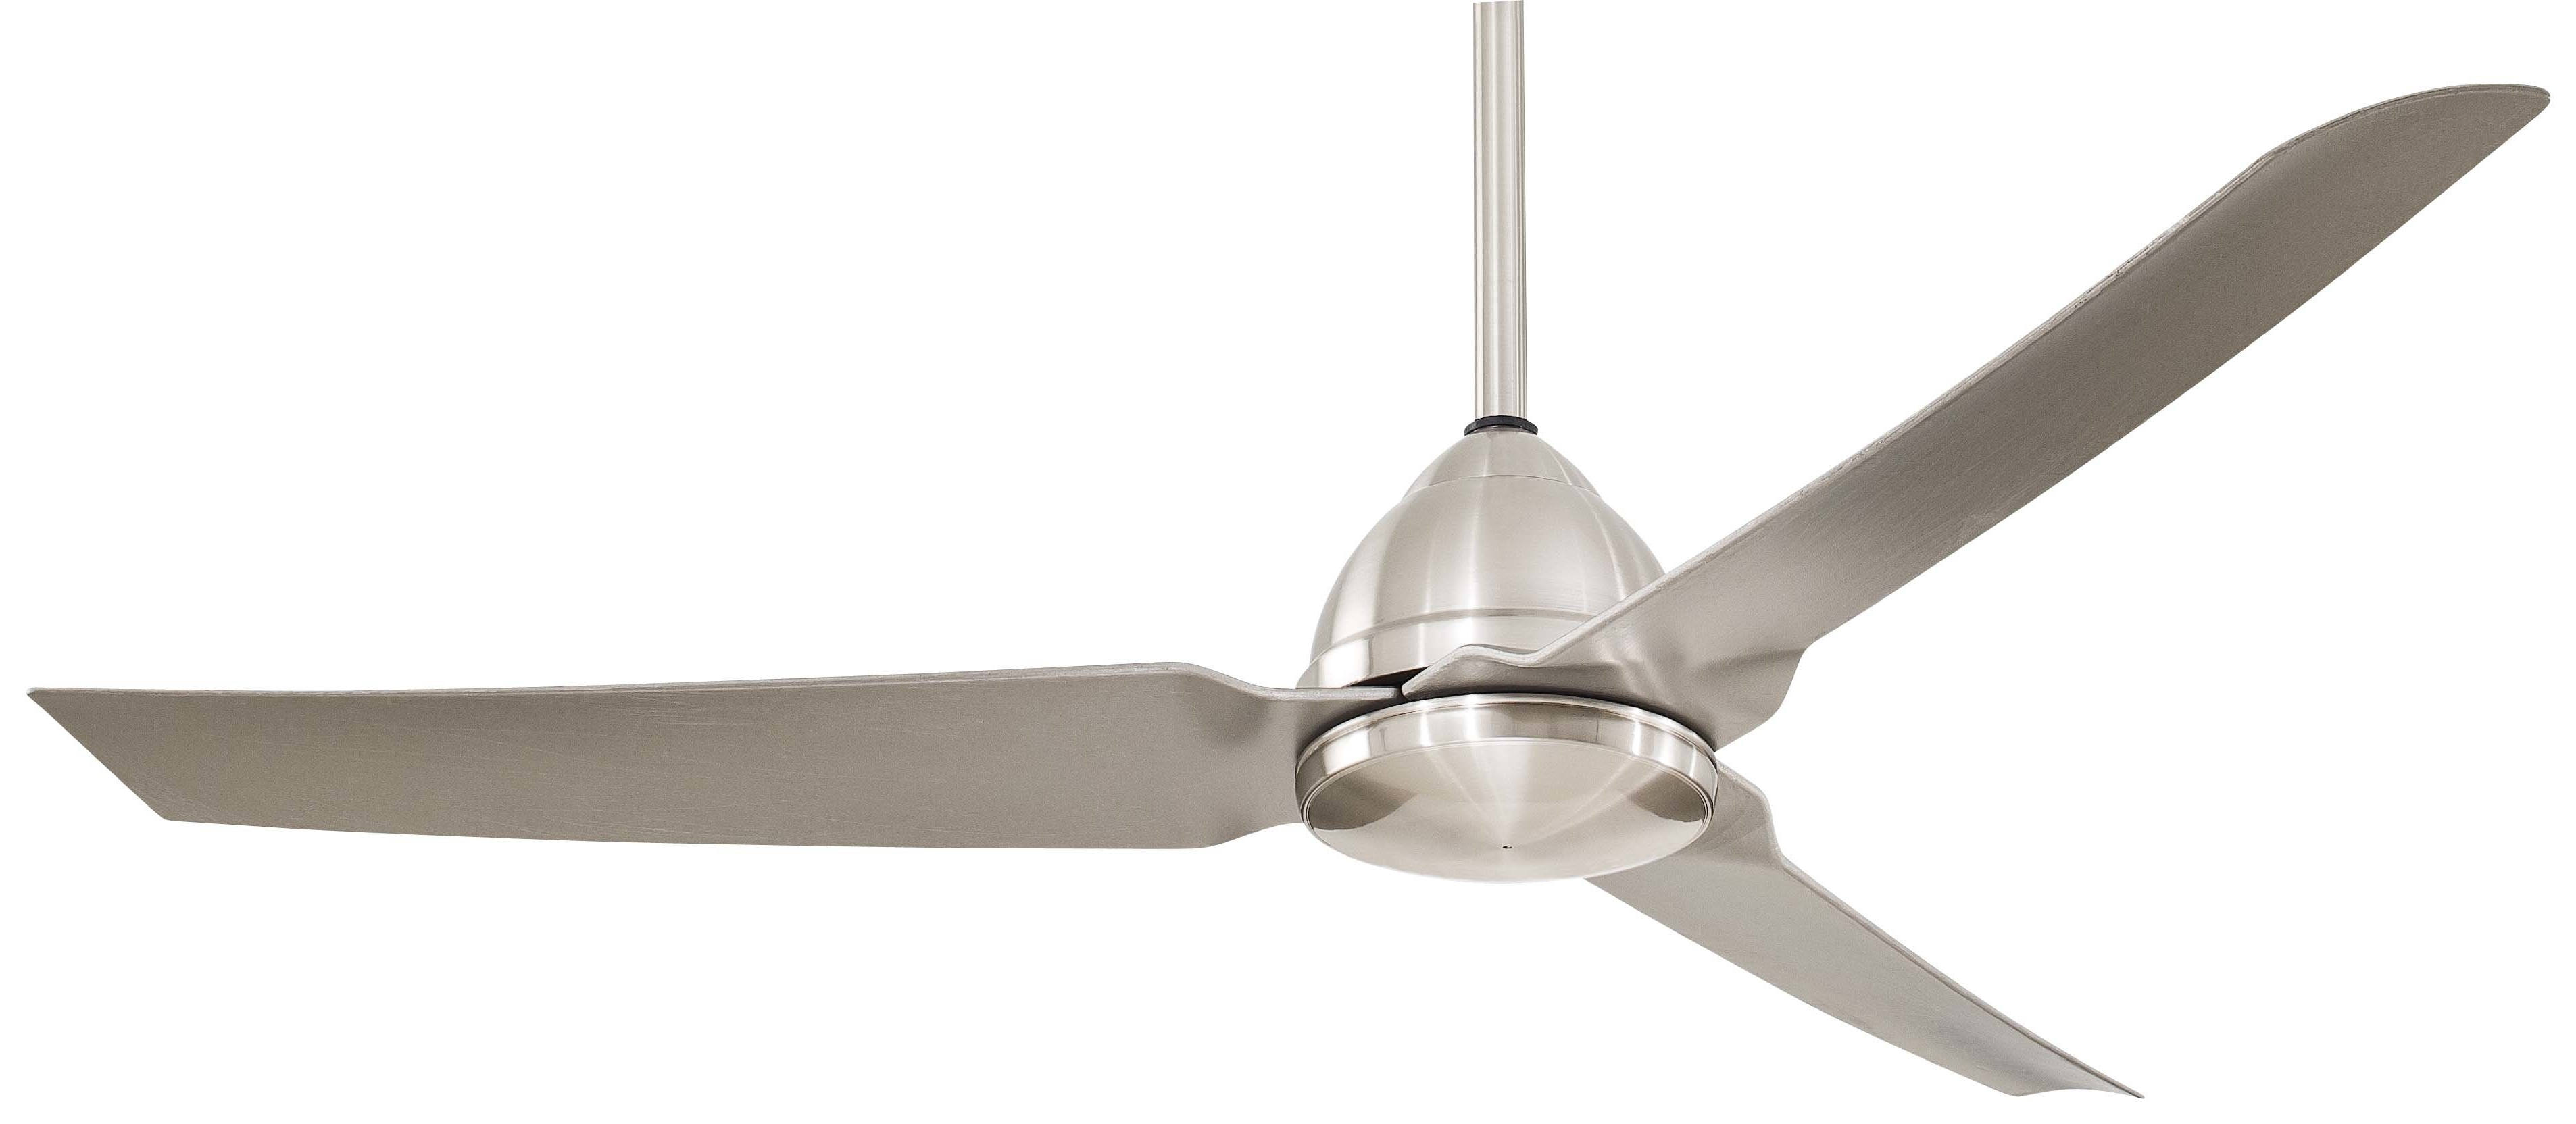 Heavy Duty Outdoor Ceiling Fans For Most Recently Released Outdoor Ceiling Fans You'll Love (View 8 of 20)